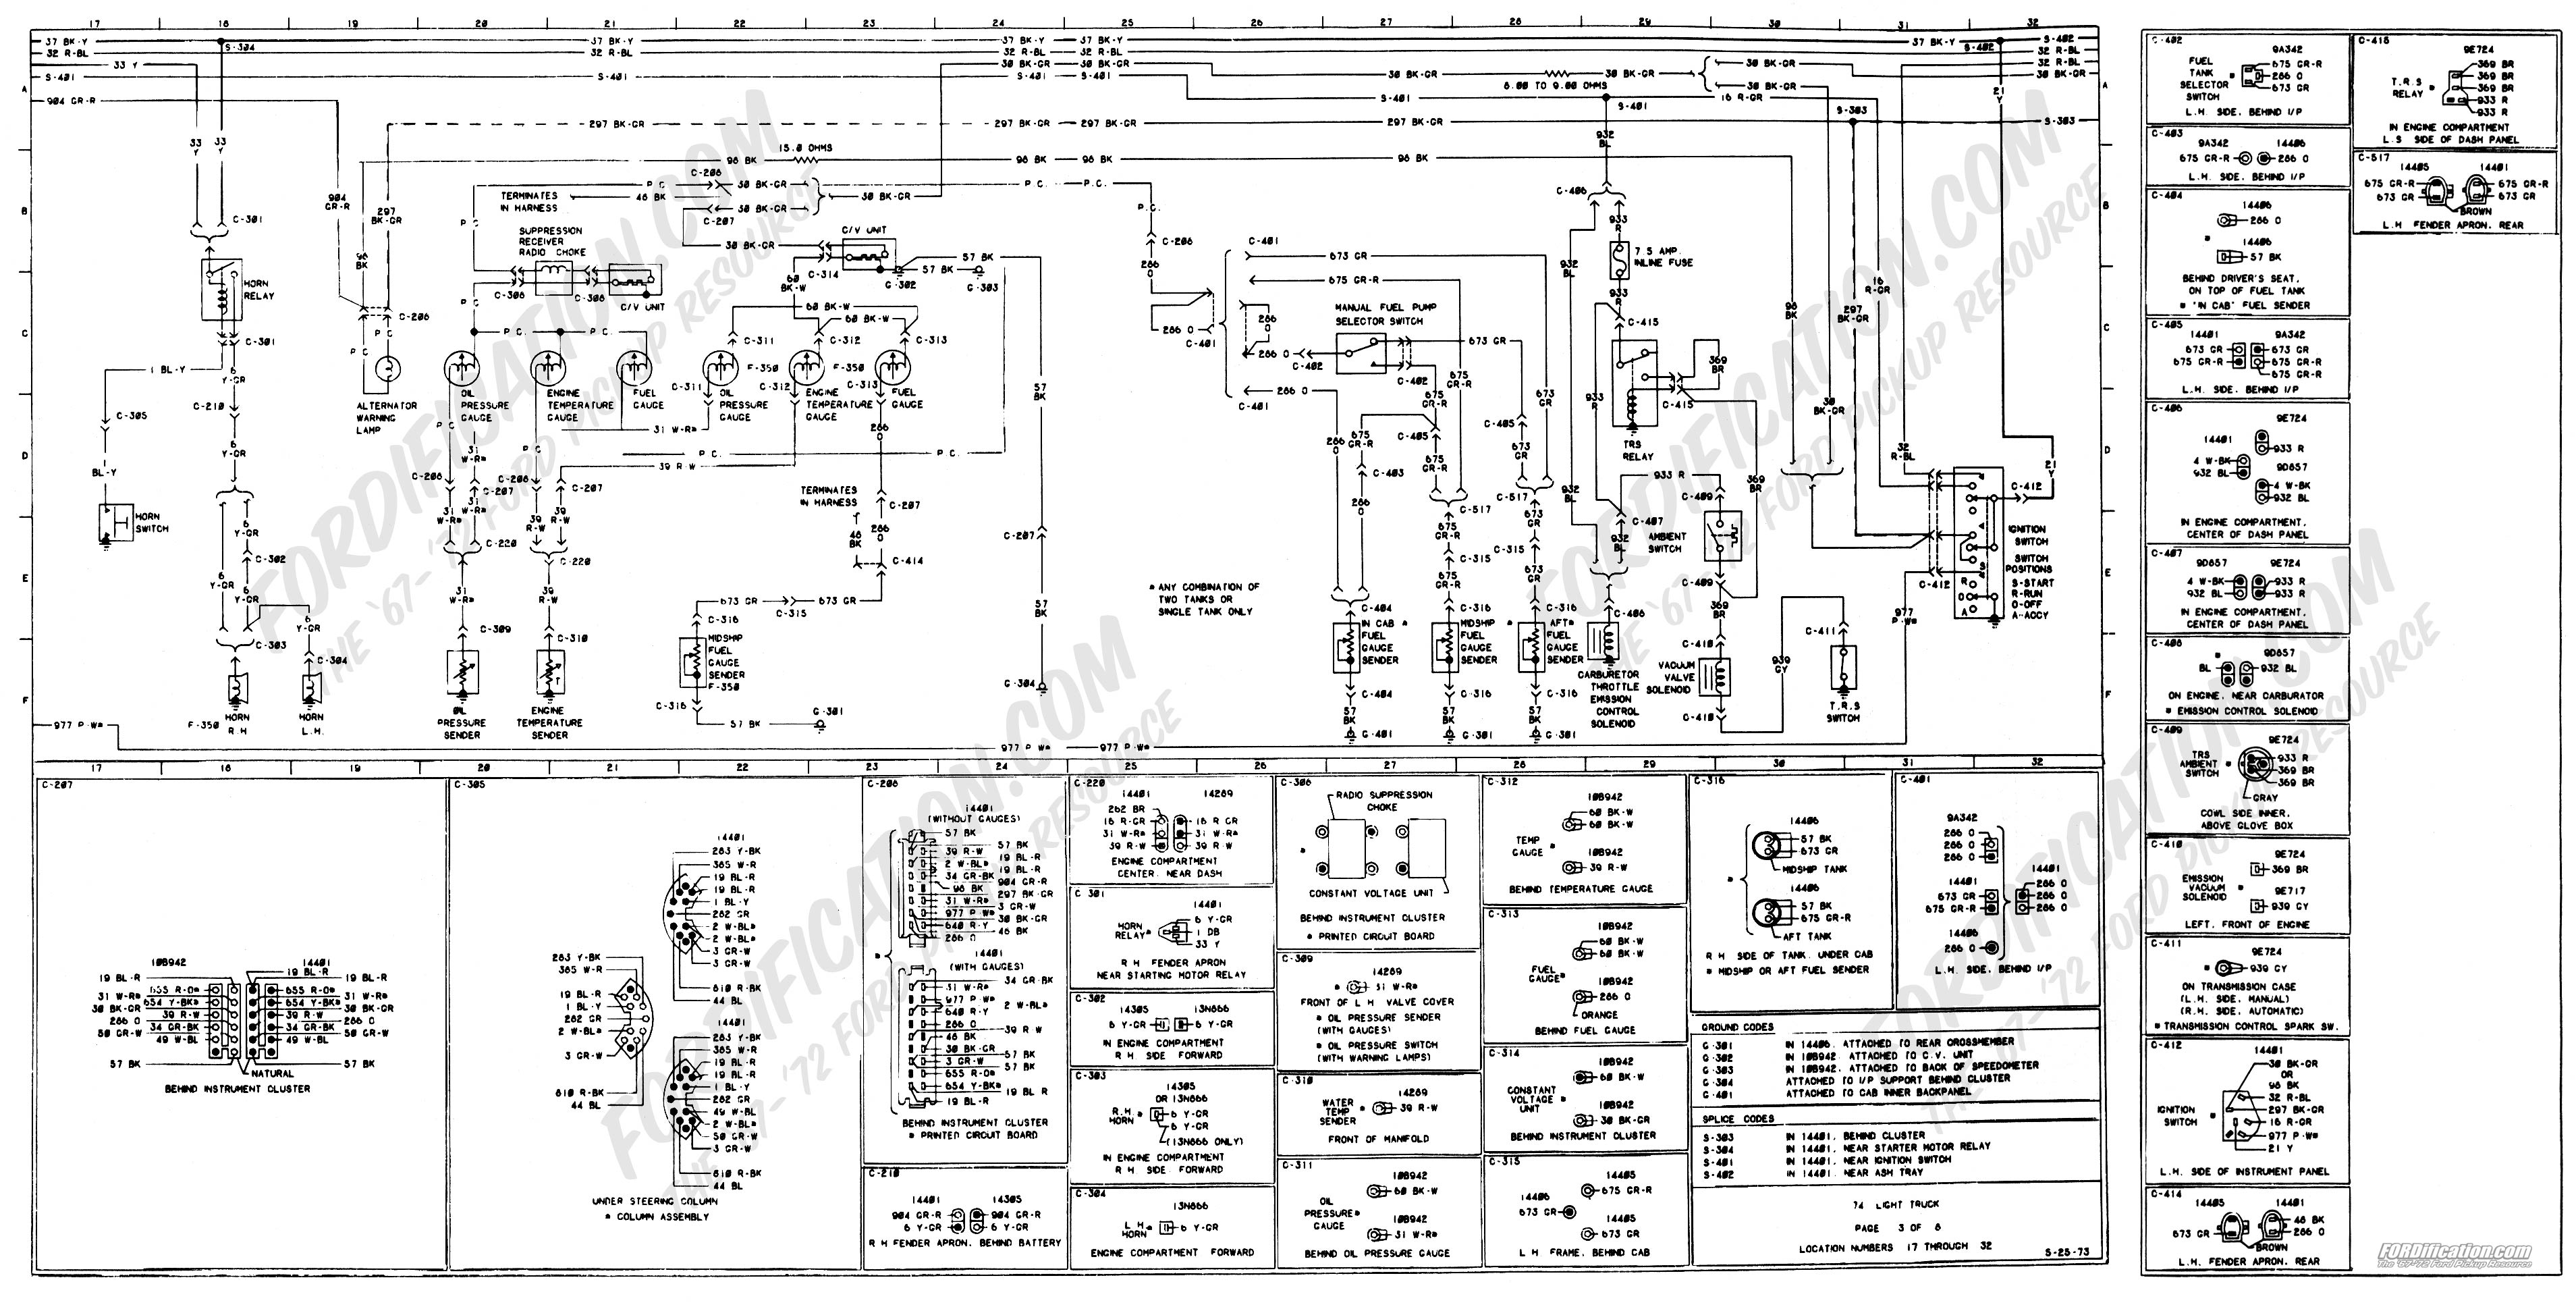 Jeep Cj Wiring Diagram Temp Gauge on 1974 chevrolet impala wiring diagram, 1976 jeep cj5 wiring diagram, 1974 oldsmobile omega wiring diagram, 1974 dodge challenger wiring diagram, 1978 jeep cj5 wiring diagram, jeep cj5 body mount diagram, 1983 jeep cj5 wiring diagram, 1975 cj5 voltage diagram, 1980 jeep cj5 wiring diagram, 1974 pontiac firebird wiring diagram, 1977 jeep cj5 wiring diagram, 1974 chevy el camino wiring diagram, 1972 jeep cj5 wiring diagram, 1973 jeep cj5 wiring diagram, 1955 jeep cj5 wiring diagram, 1974 ford courier wiring diagram, 1974 ford bronco wiring diagram, 1969 jeep cj5 wiring diagram, 1974 ford ltd wiring diagram, 1975 jeep cj5 wiring diagram,